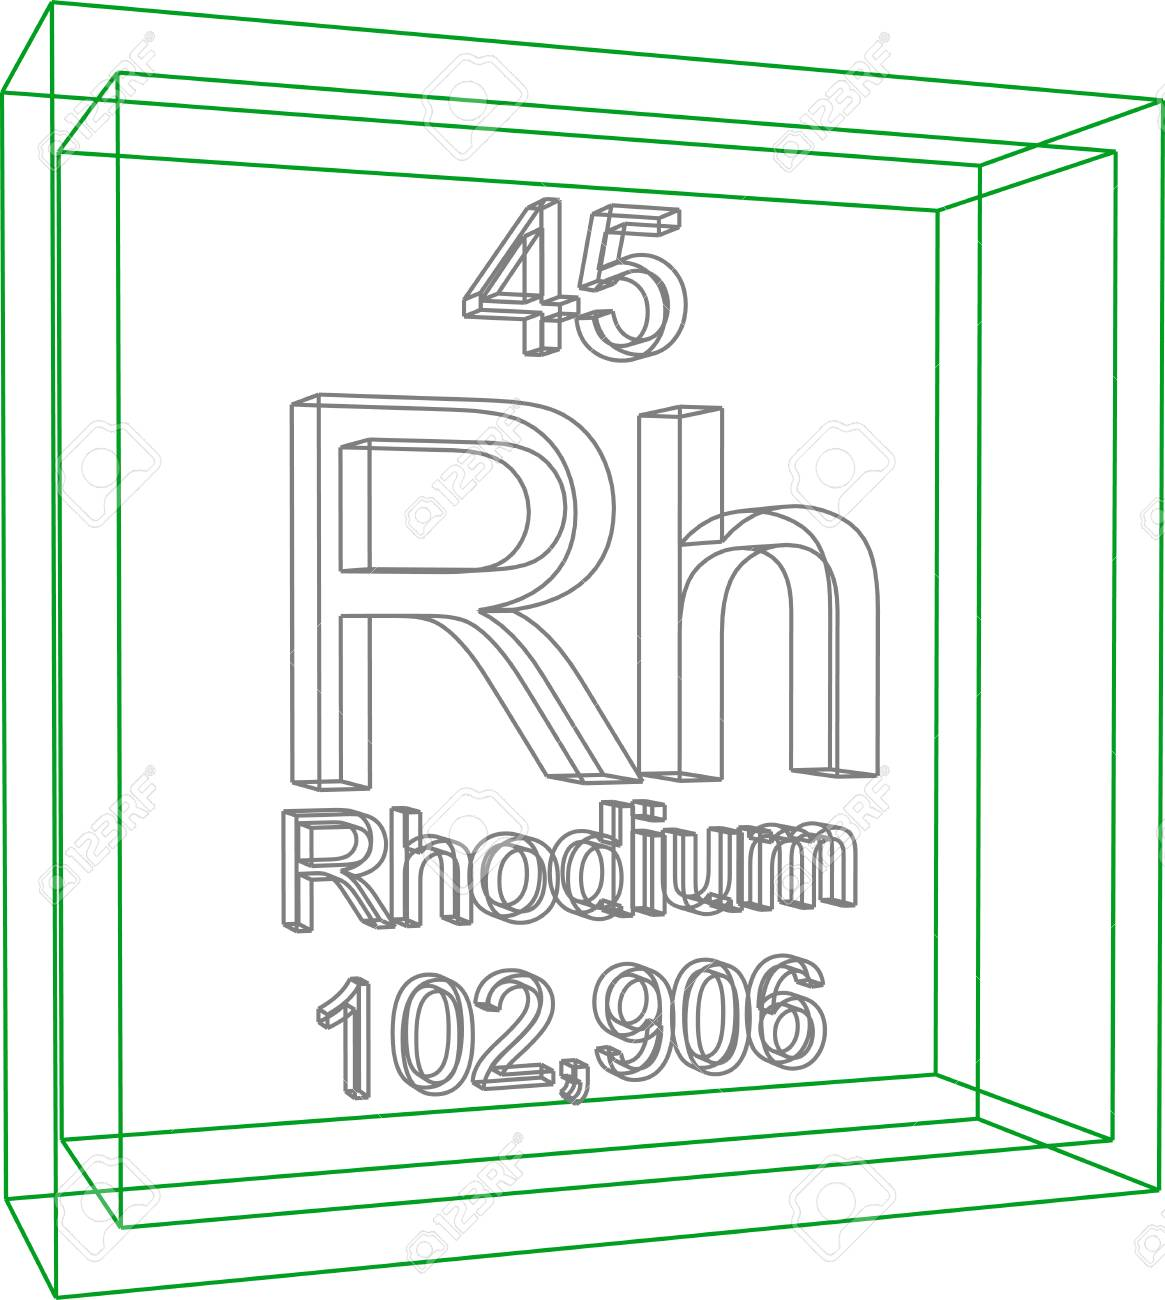 Periodic table rhodium gallery periodic table images periodic table of elements rhodium royalty free cliparts periodic table of elements rhodium stock vector 57970230 gamestrikefo Image collections